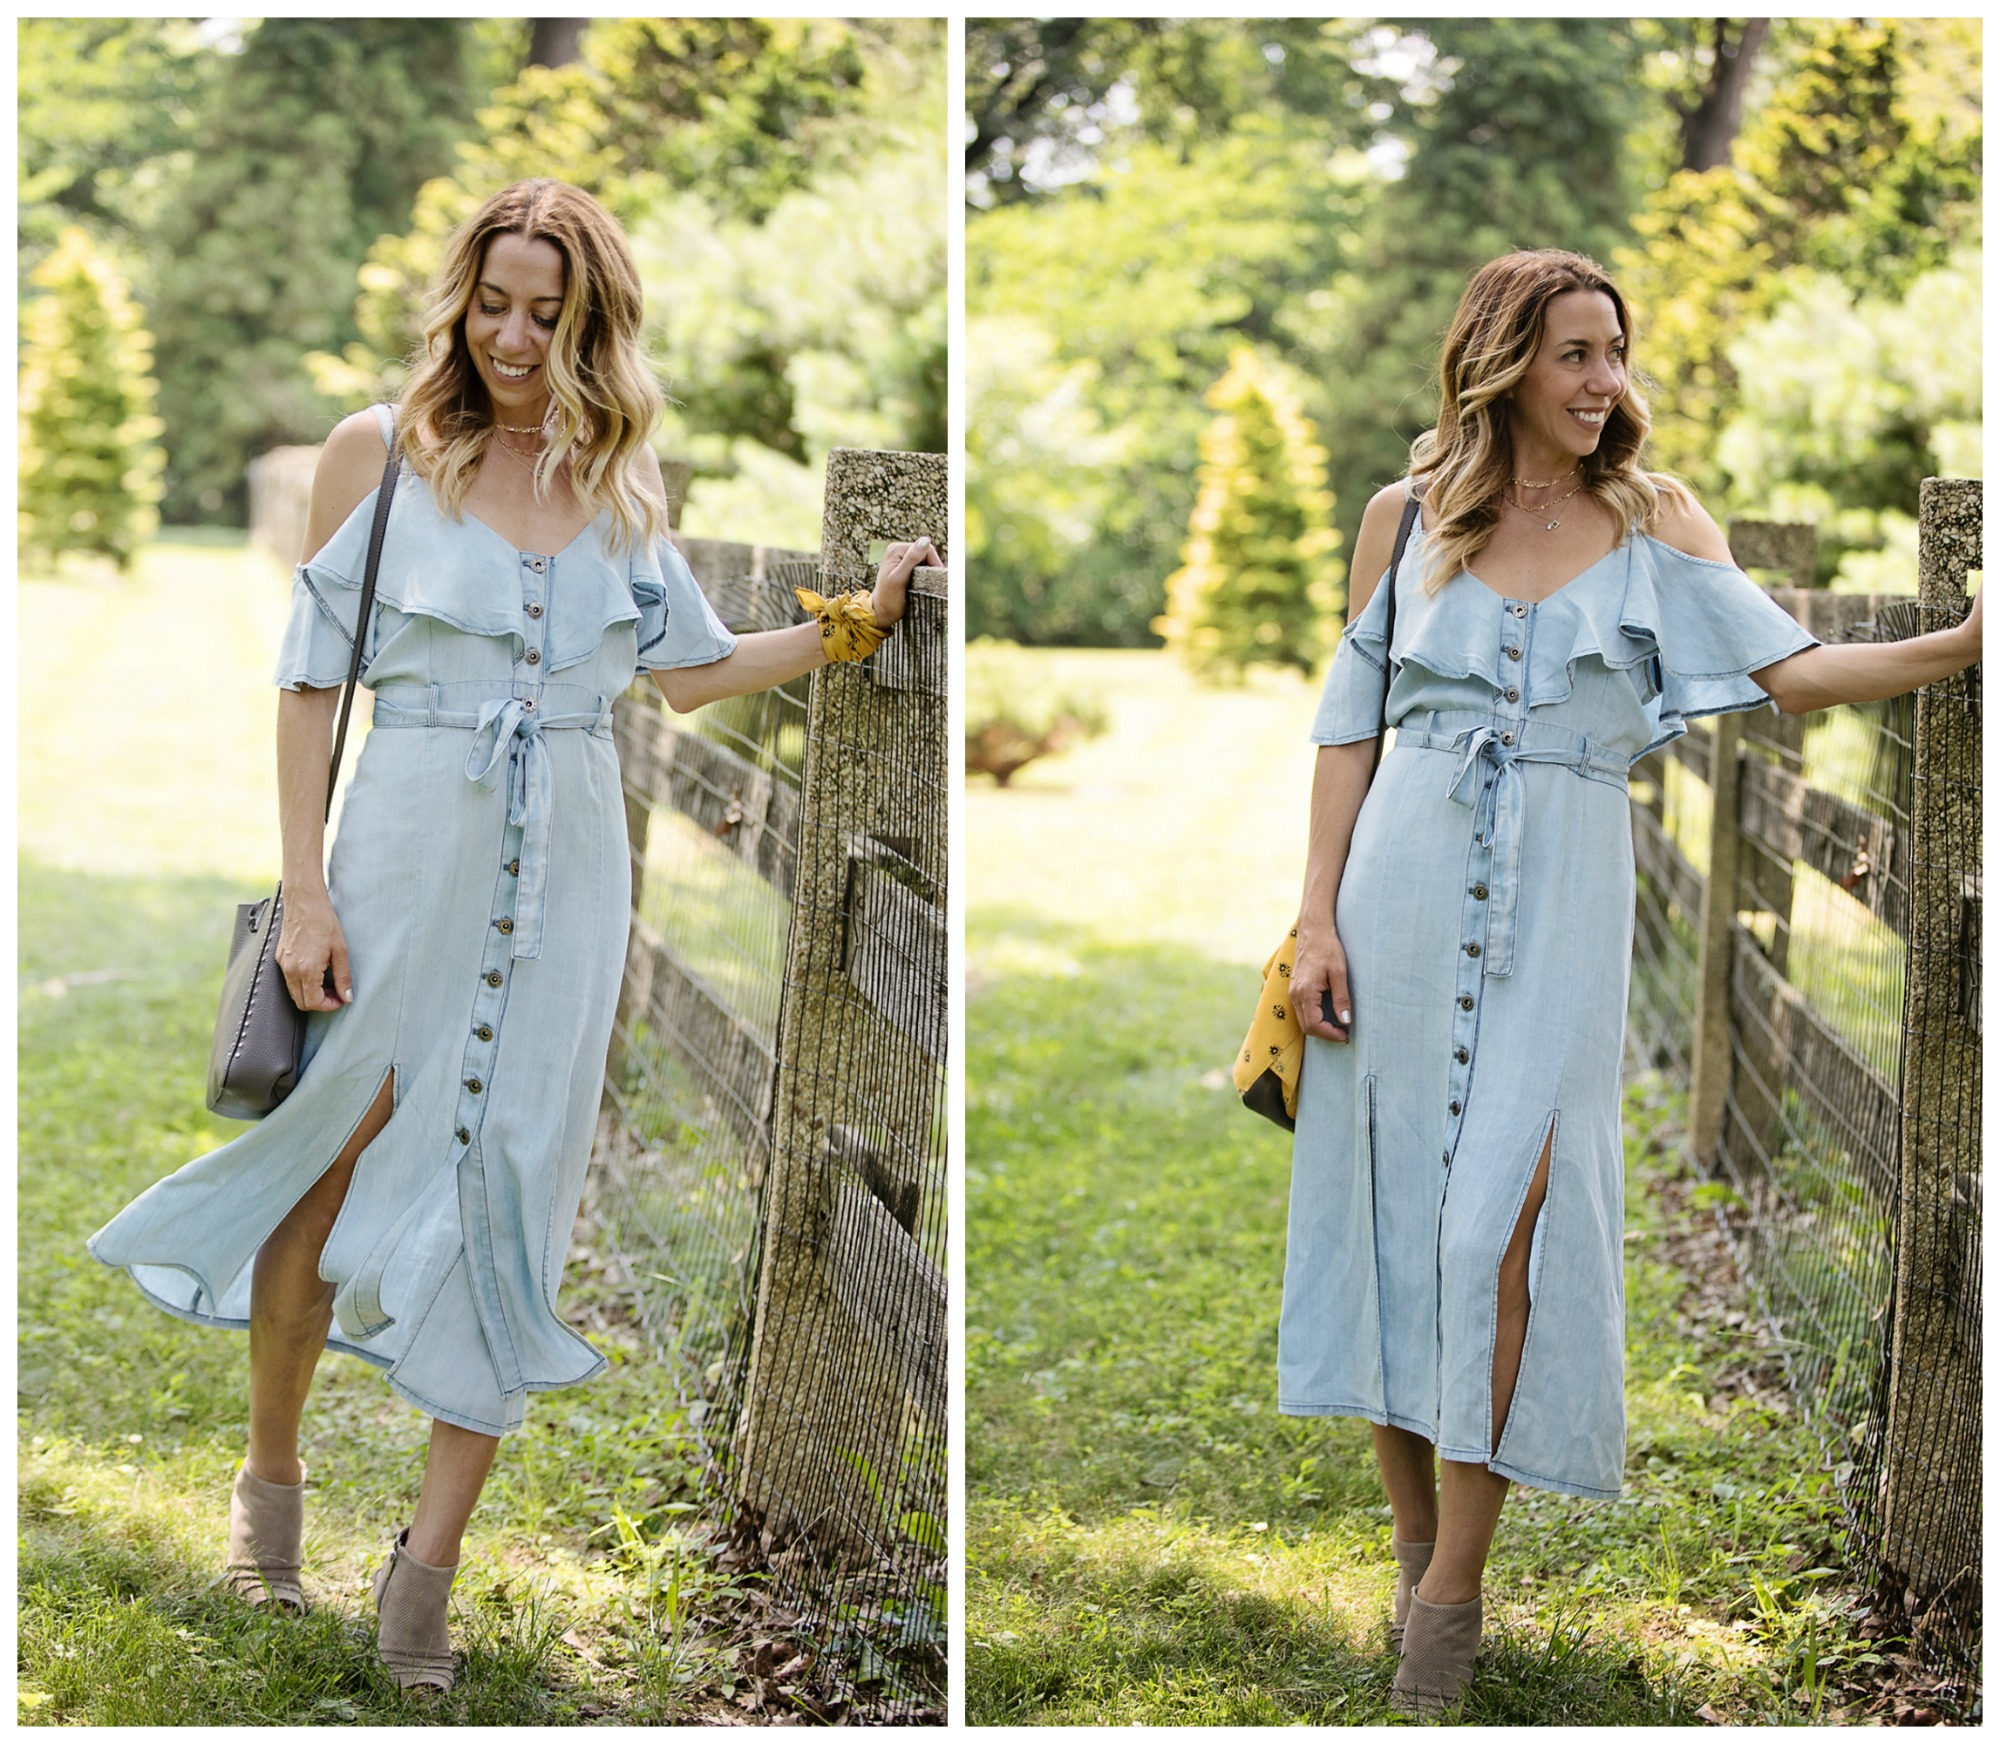 The Motherchic wearing BB dakota chambray dress